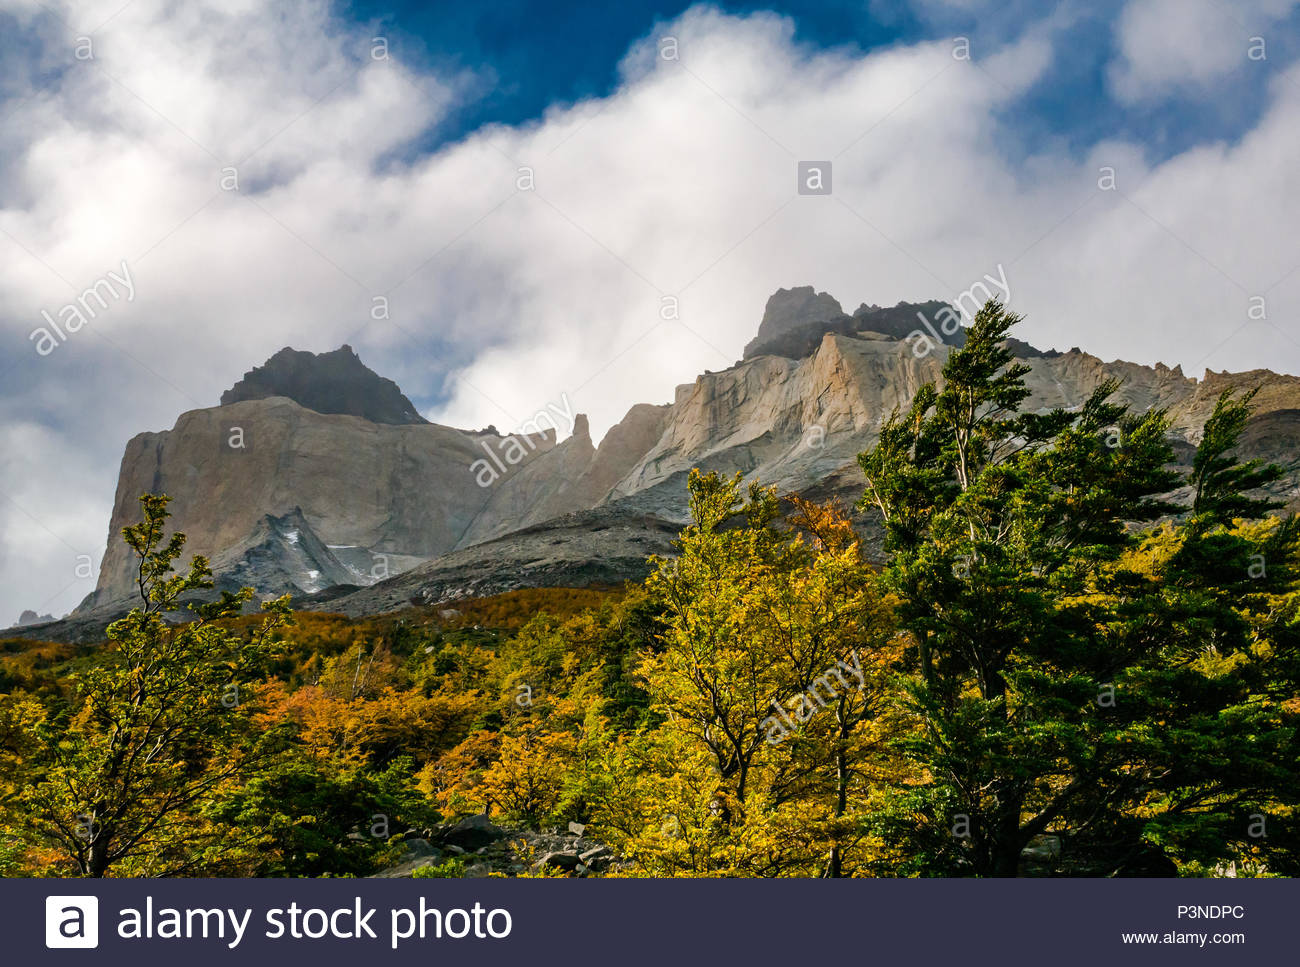 Towering peaks of Paine Horns, with granite intrusion, Torres del Paine National Park, Patagonia, Chile, South America, with Autumn trees - Stock Image